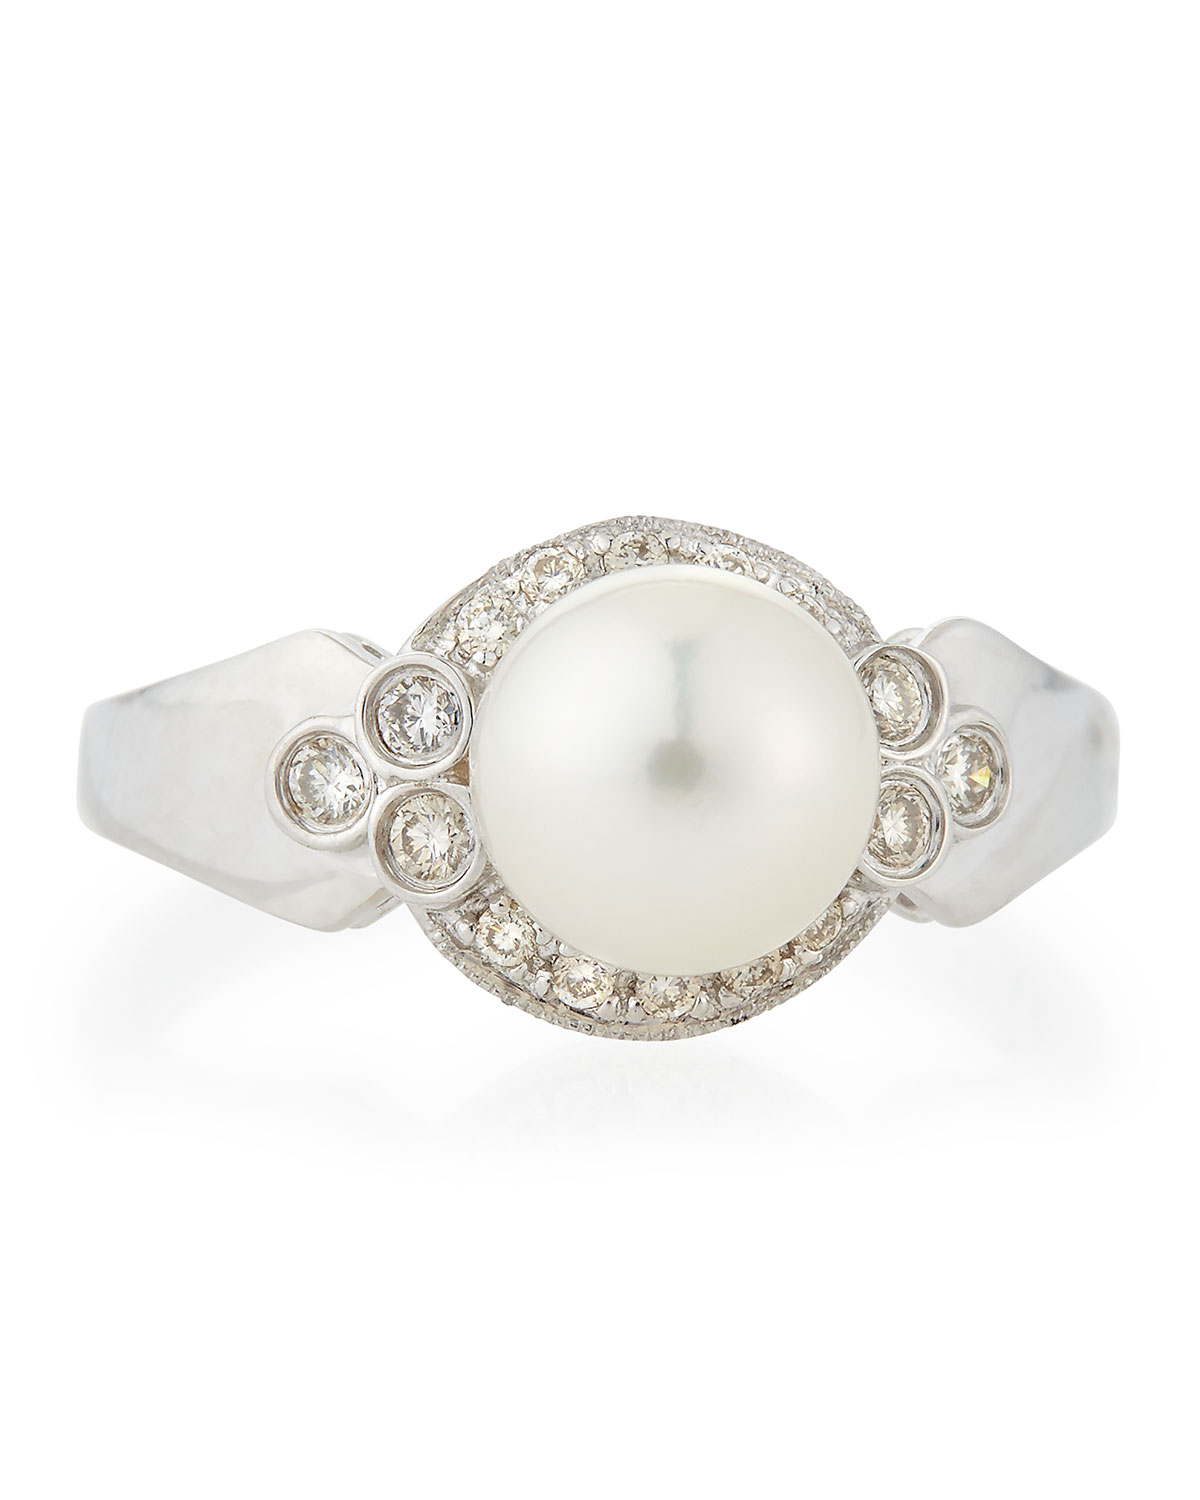 Belpearl 18k Akoya Pearl & Curved Diamond Ring, Size 7